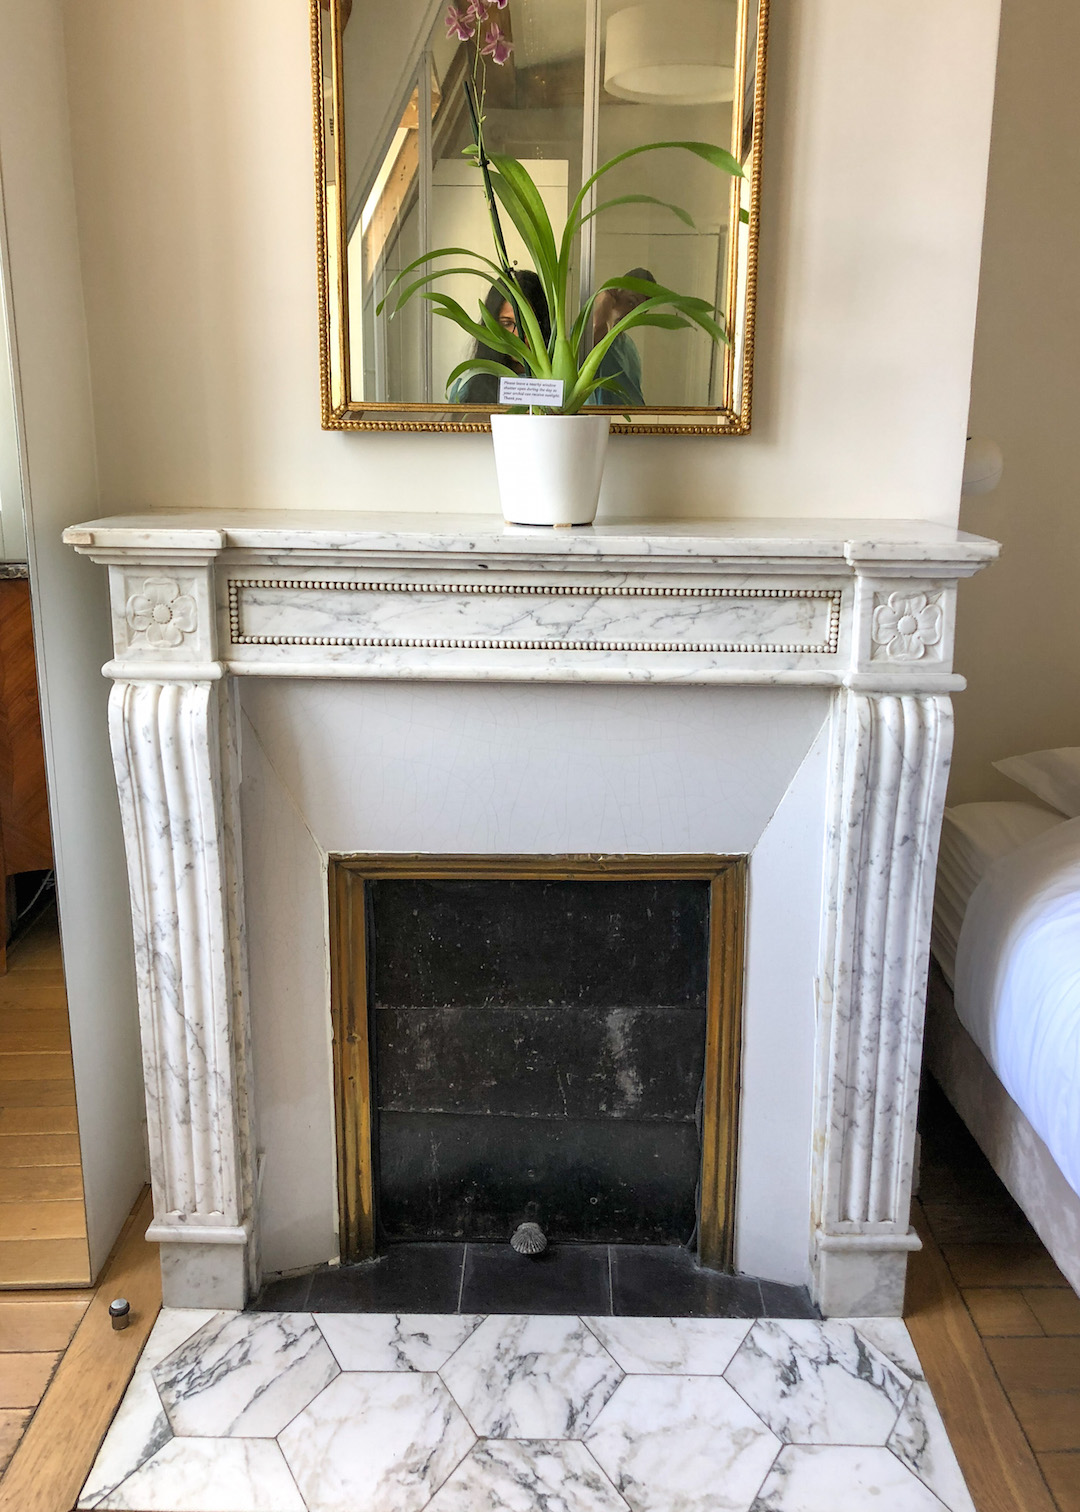 Original Fireplace at Airbnb in Paris